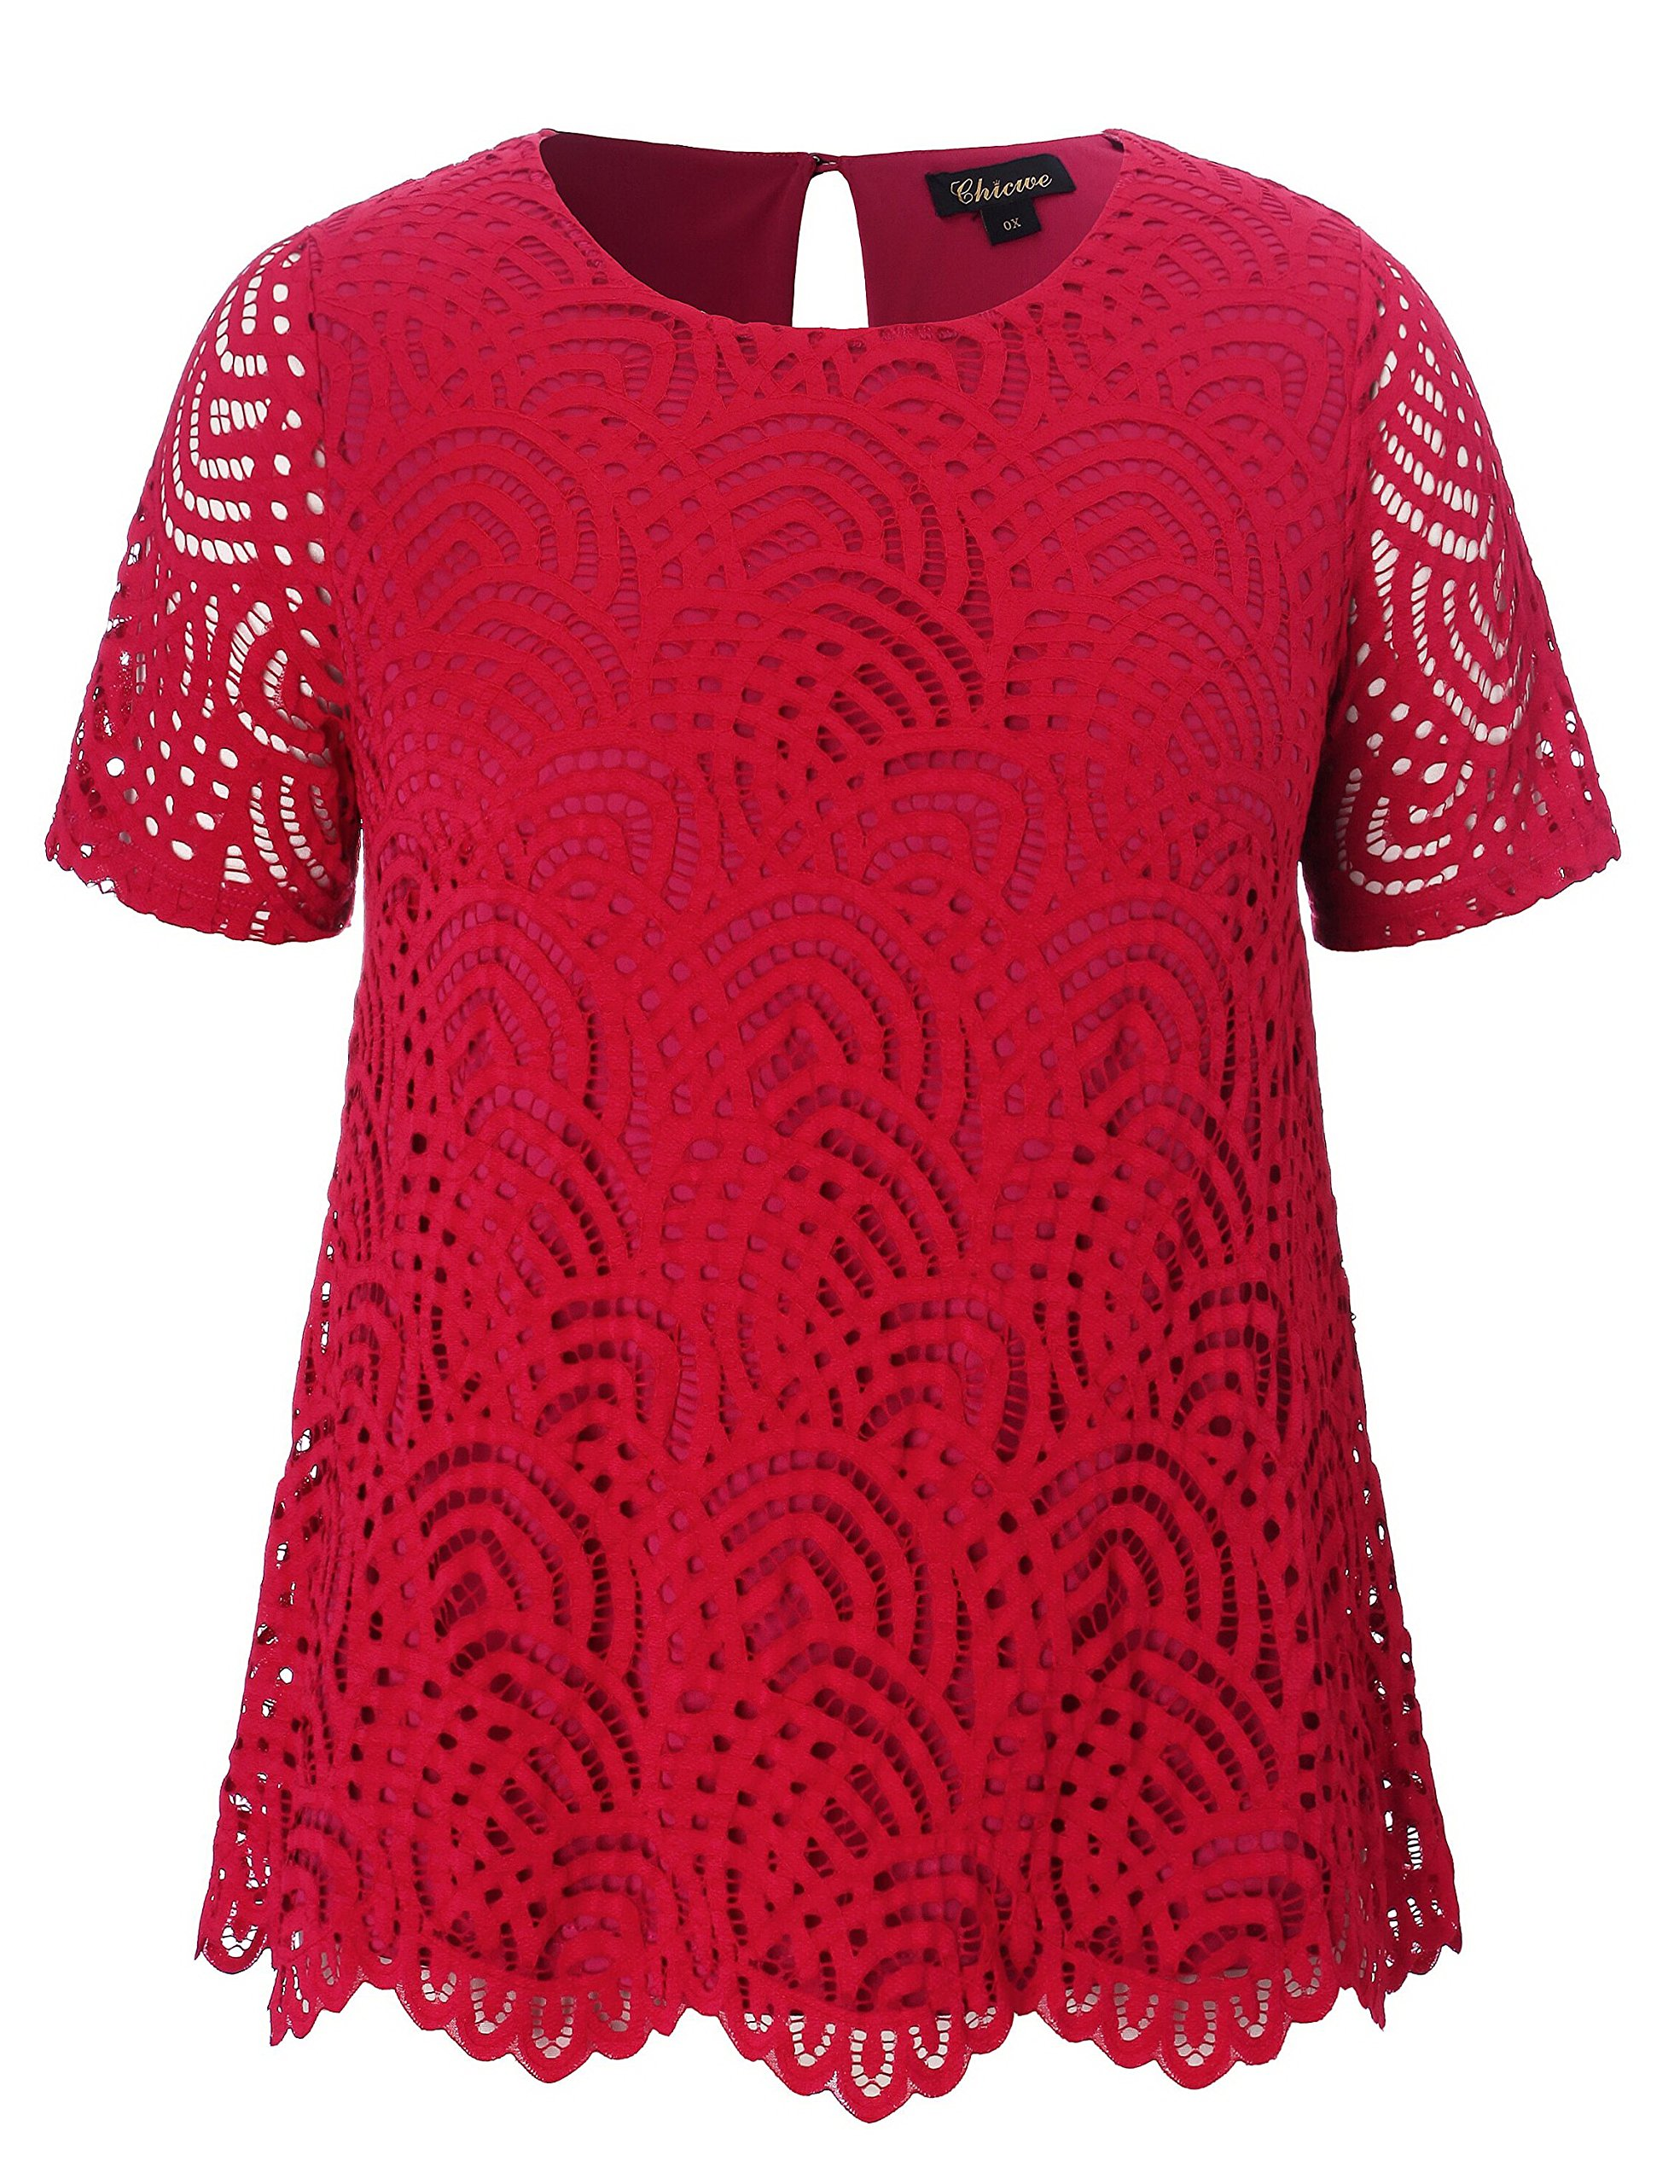 Chicwe Women's Plus Size Smart Scalloped Lace Solid Top - Casual and Work Blouse Red 2X